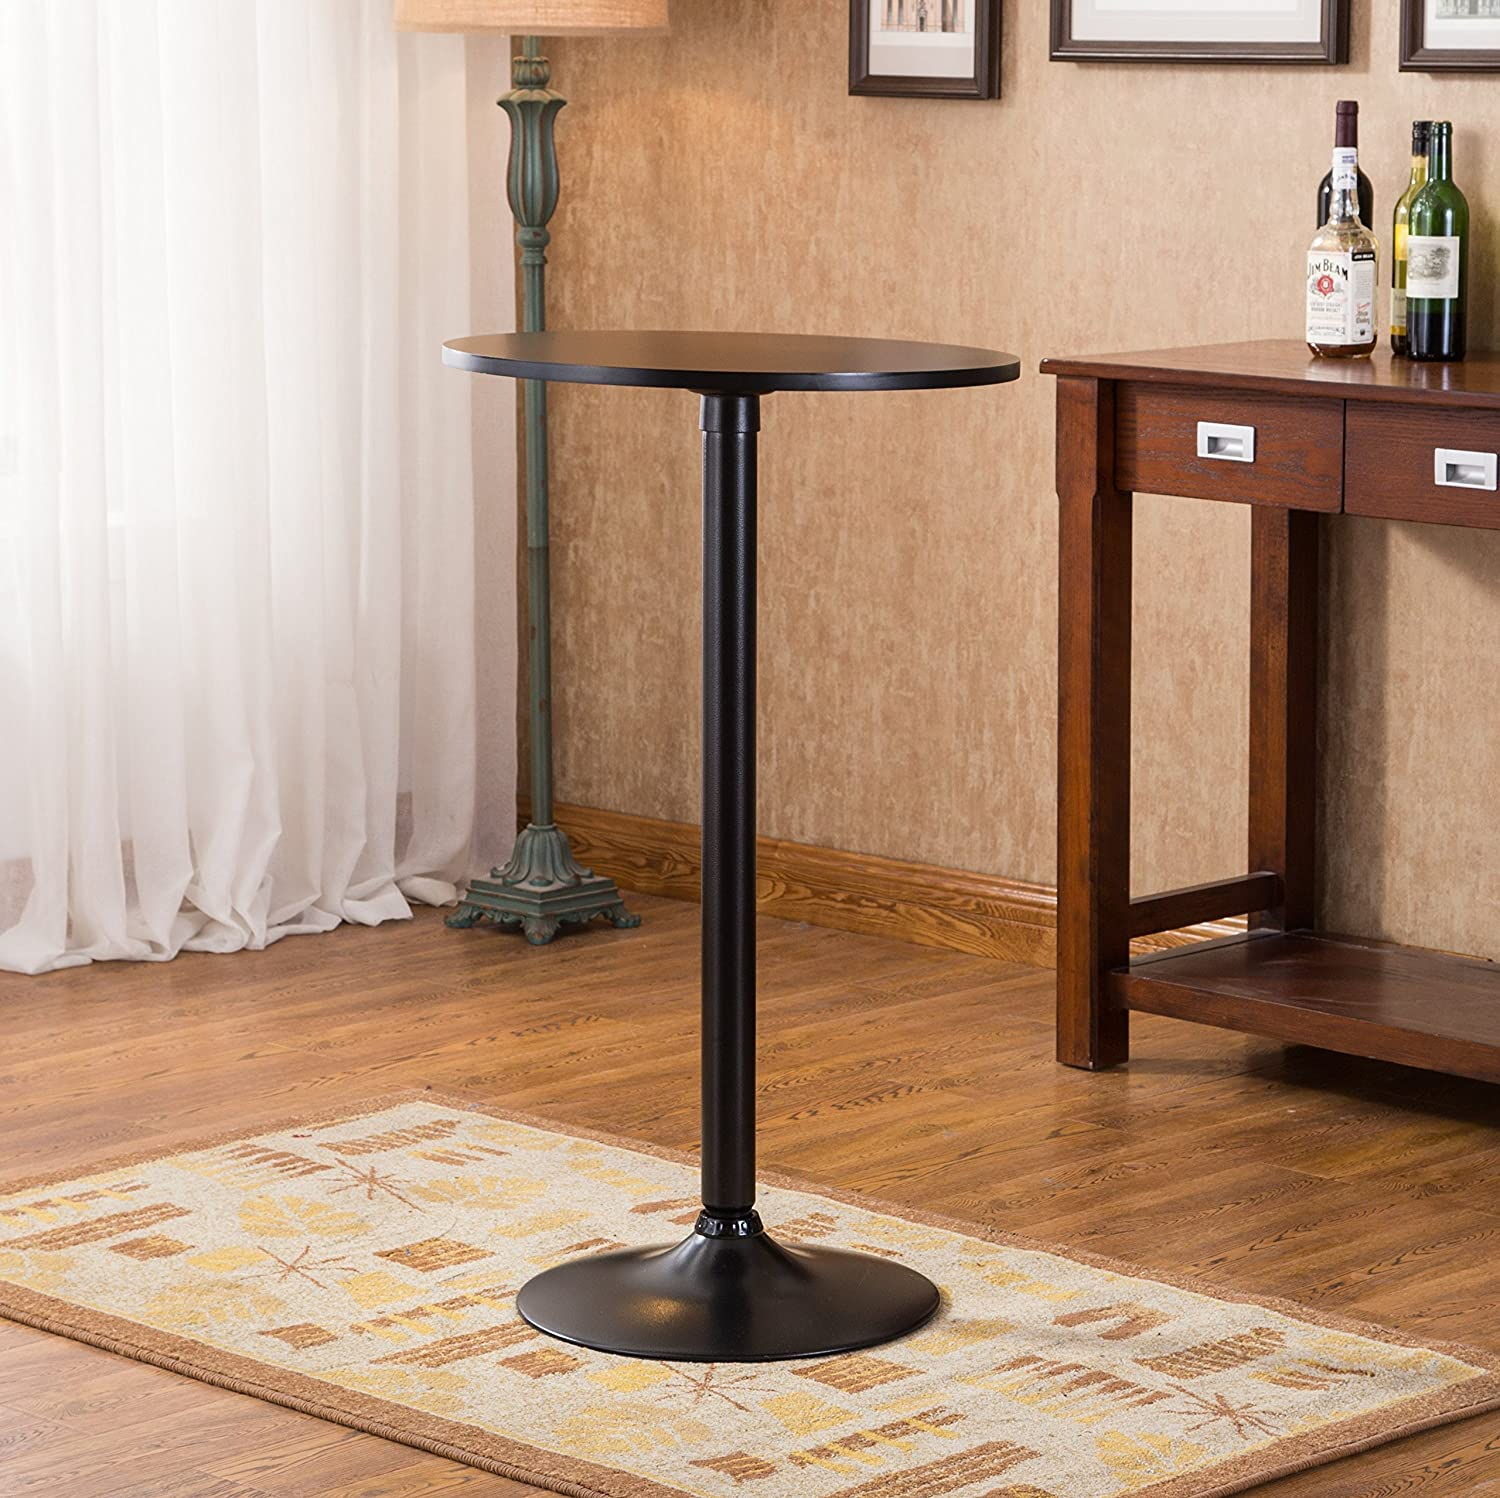 Roundhill Furniture Belham Black Round Top with Black Leg and Base Metal Bar Table RH PT253